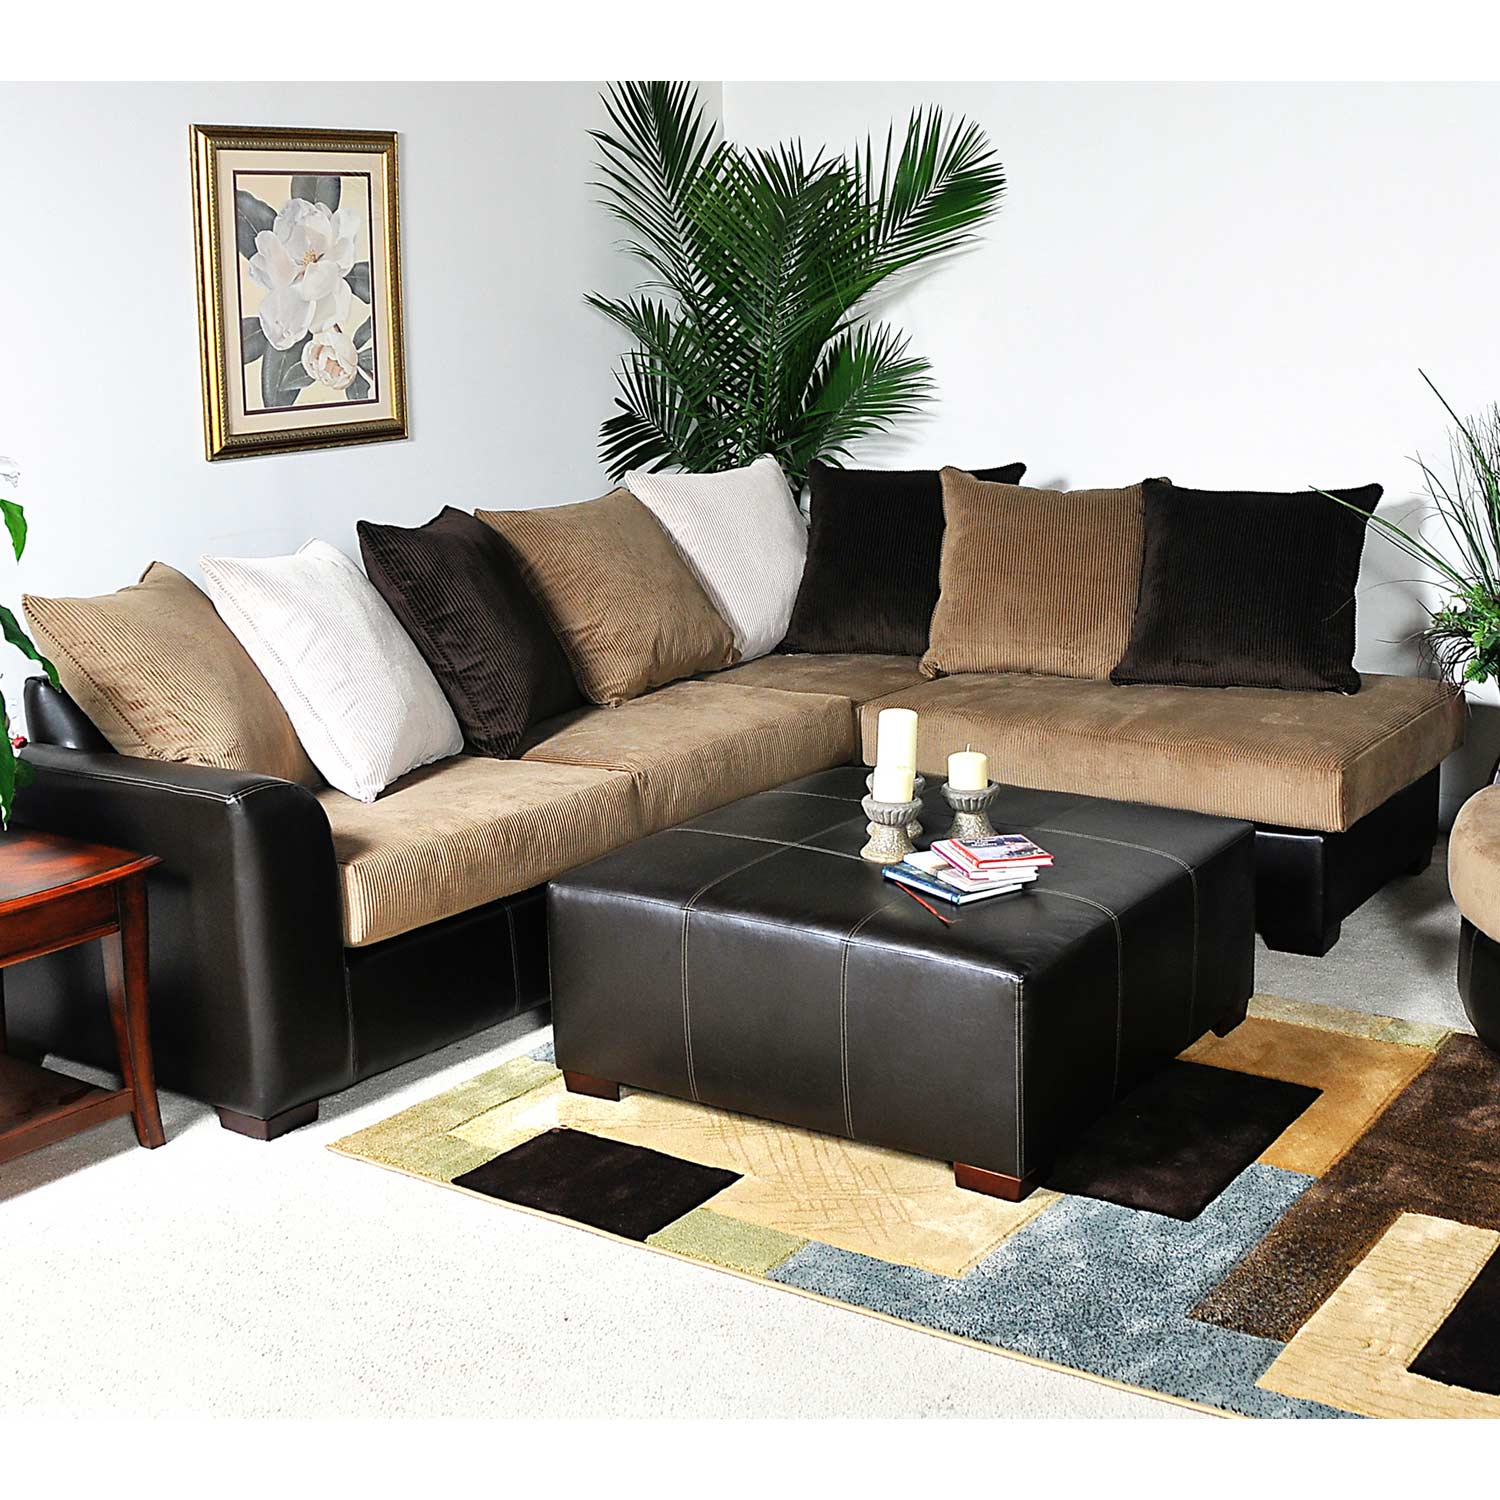 Domino Modern Sectional Sofa - Multi-Toned Pillows